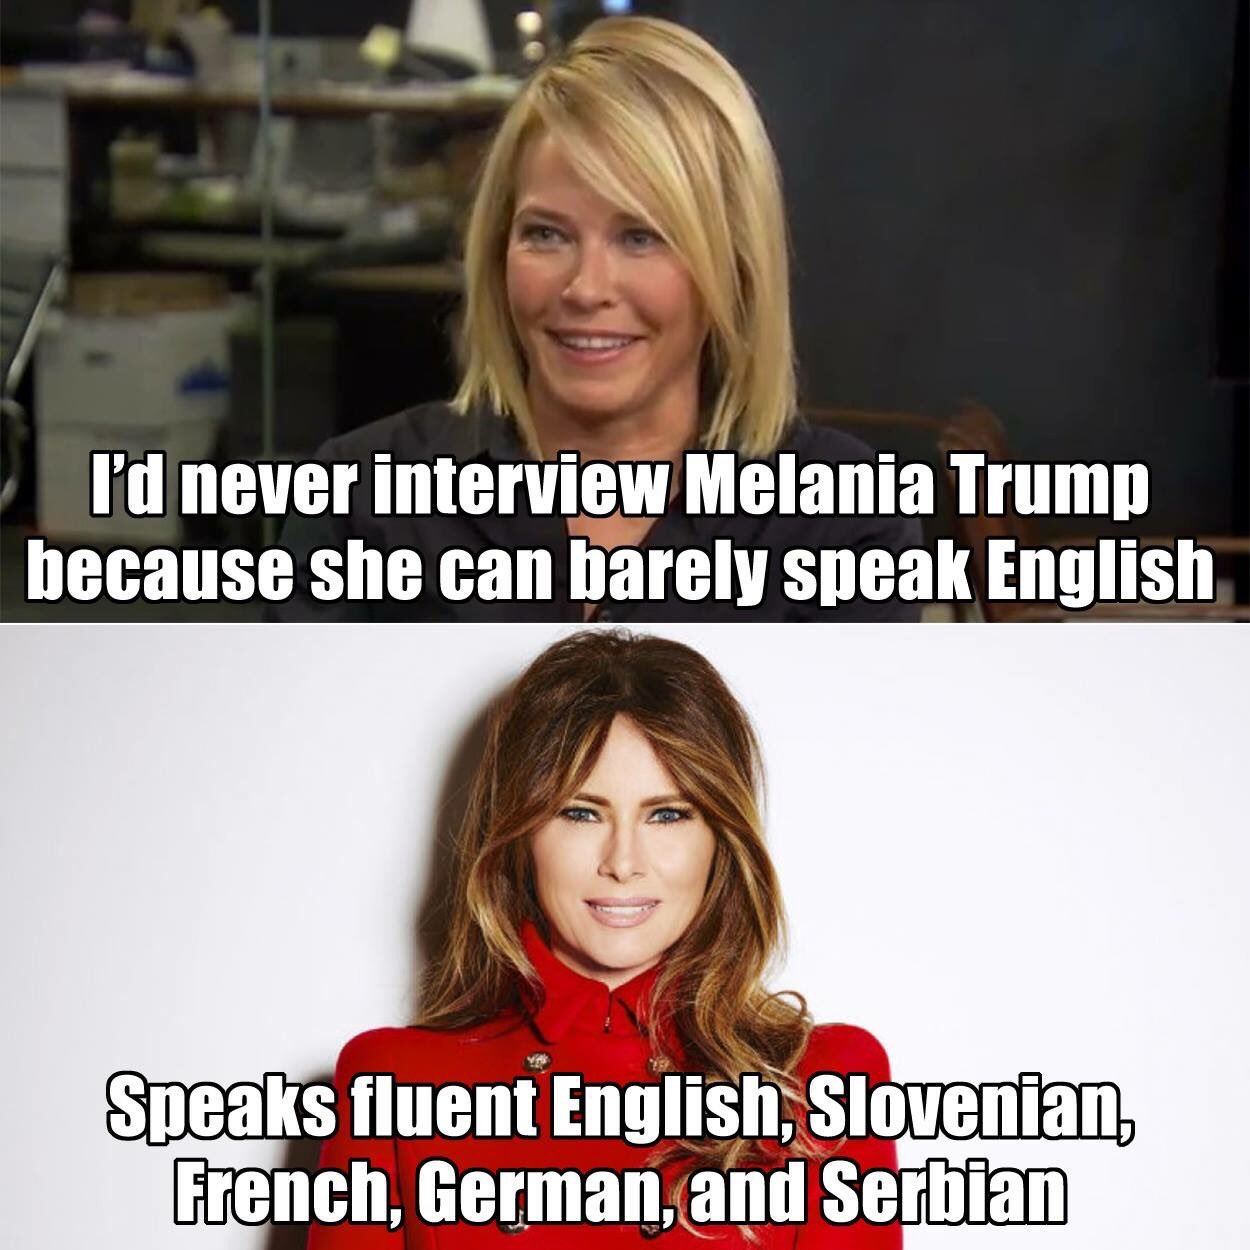 stupid-leftists-chelsea-handler-attacks-melanias-english